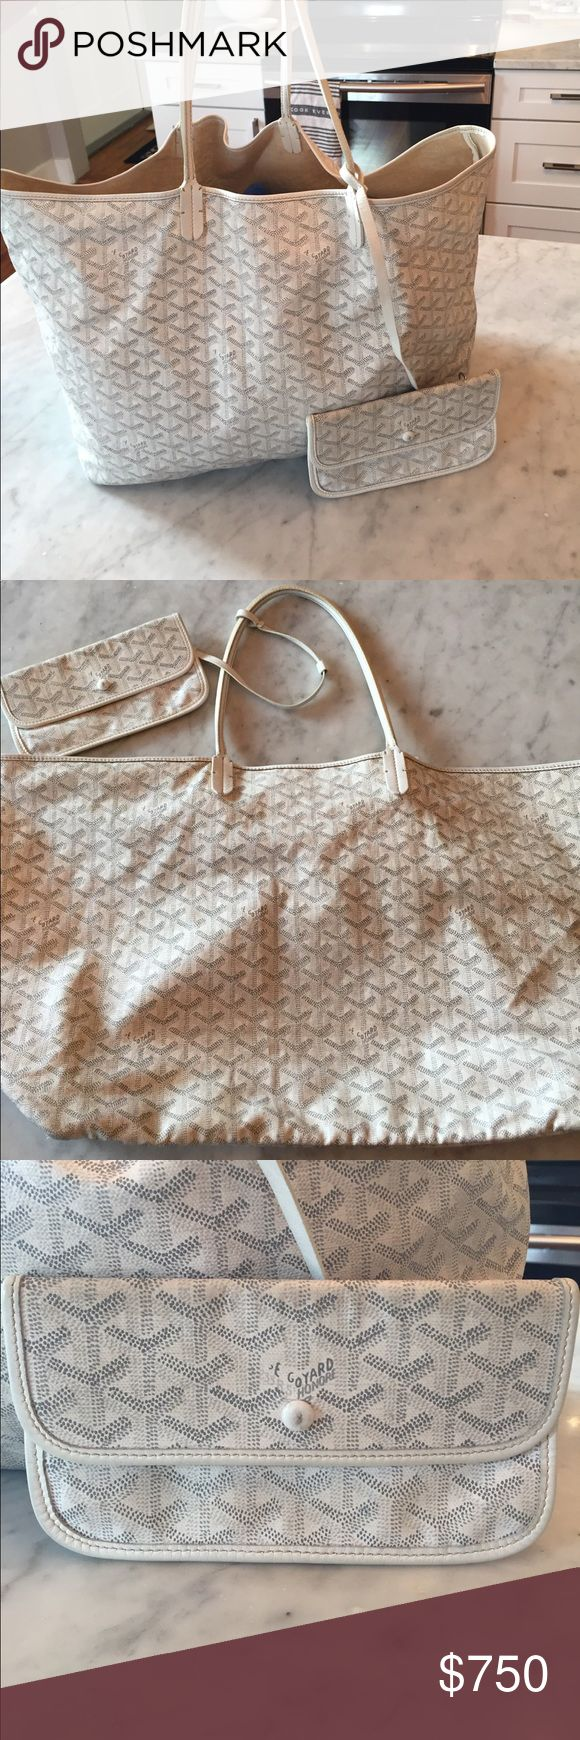 Goyard St. Louis Tote GM Authentic. See marking. Cracking on both leather handles which is reflected in price. Small ink stain on interior of clutch and a mark on the button closure. Tote interior has light marks. Abrasion on bottom corners. No rips. No trades. Goyard Bags Totes